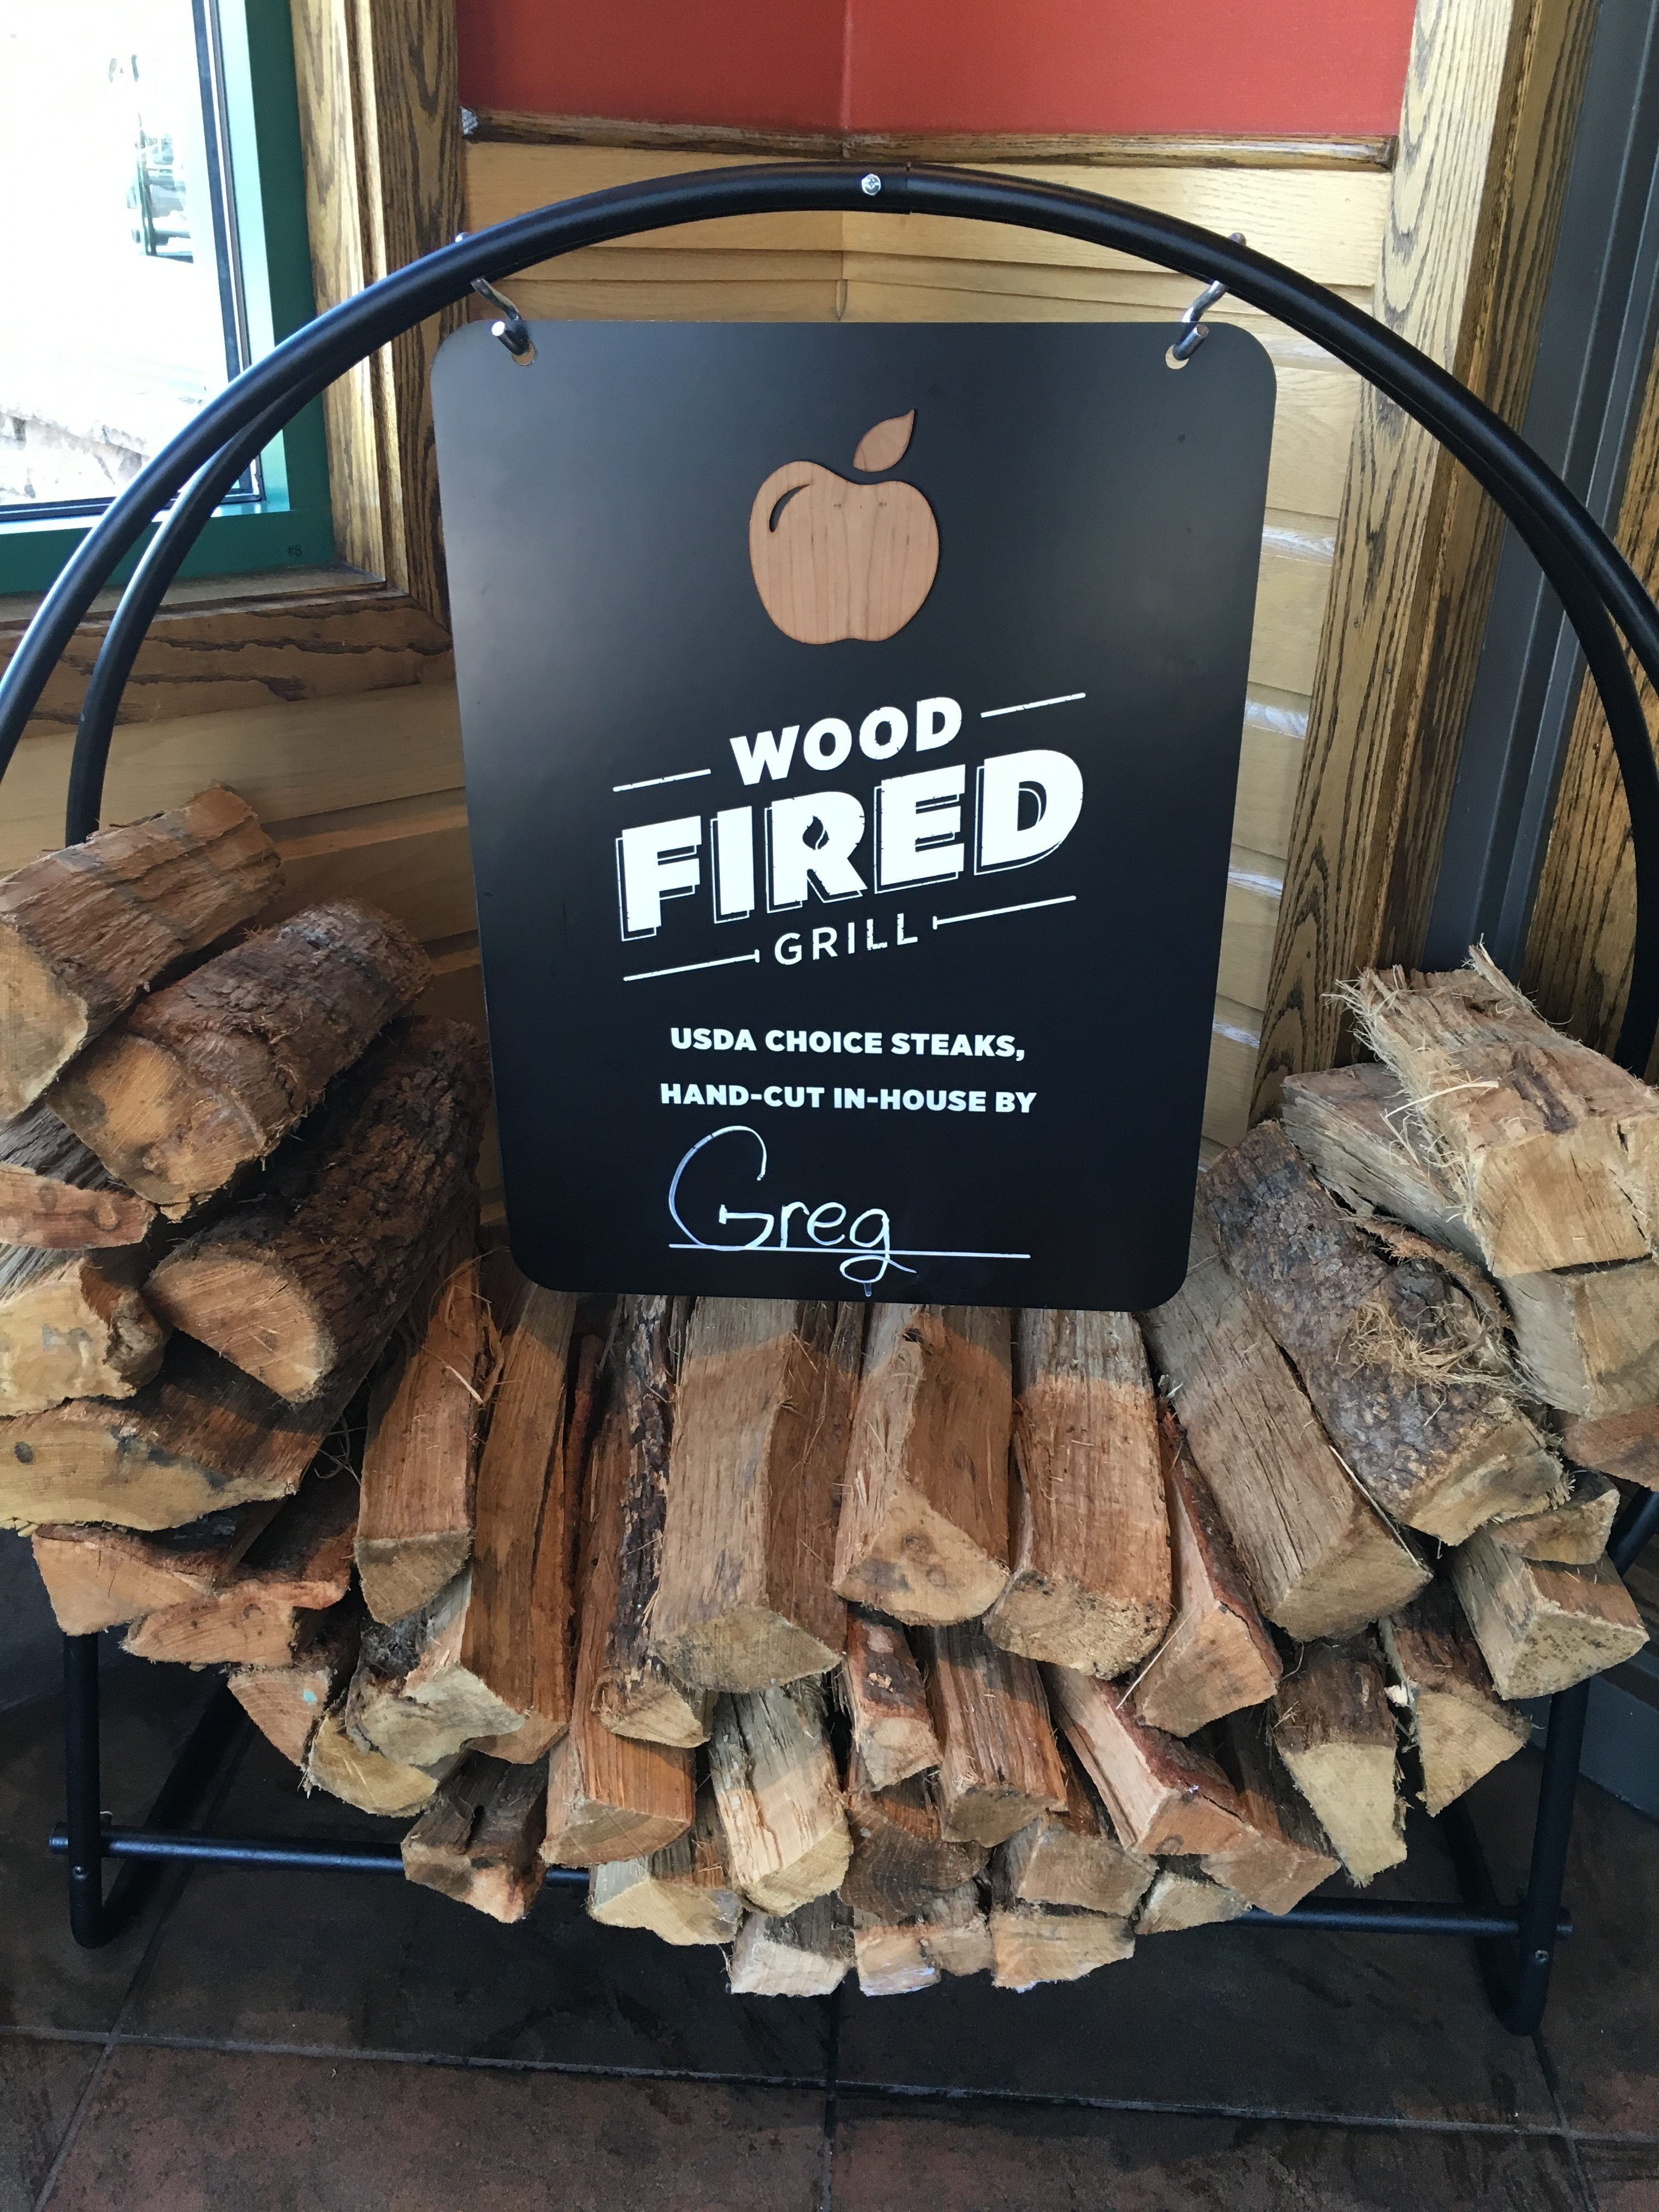 wood fired grill applebee's